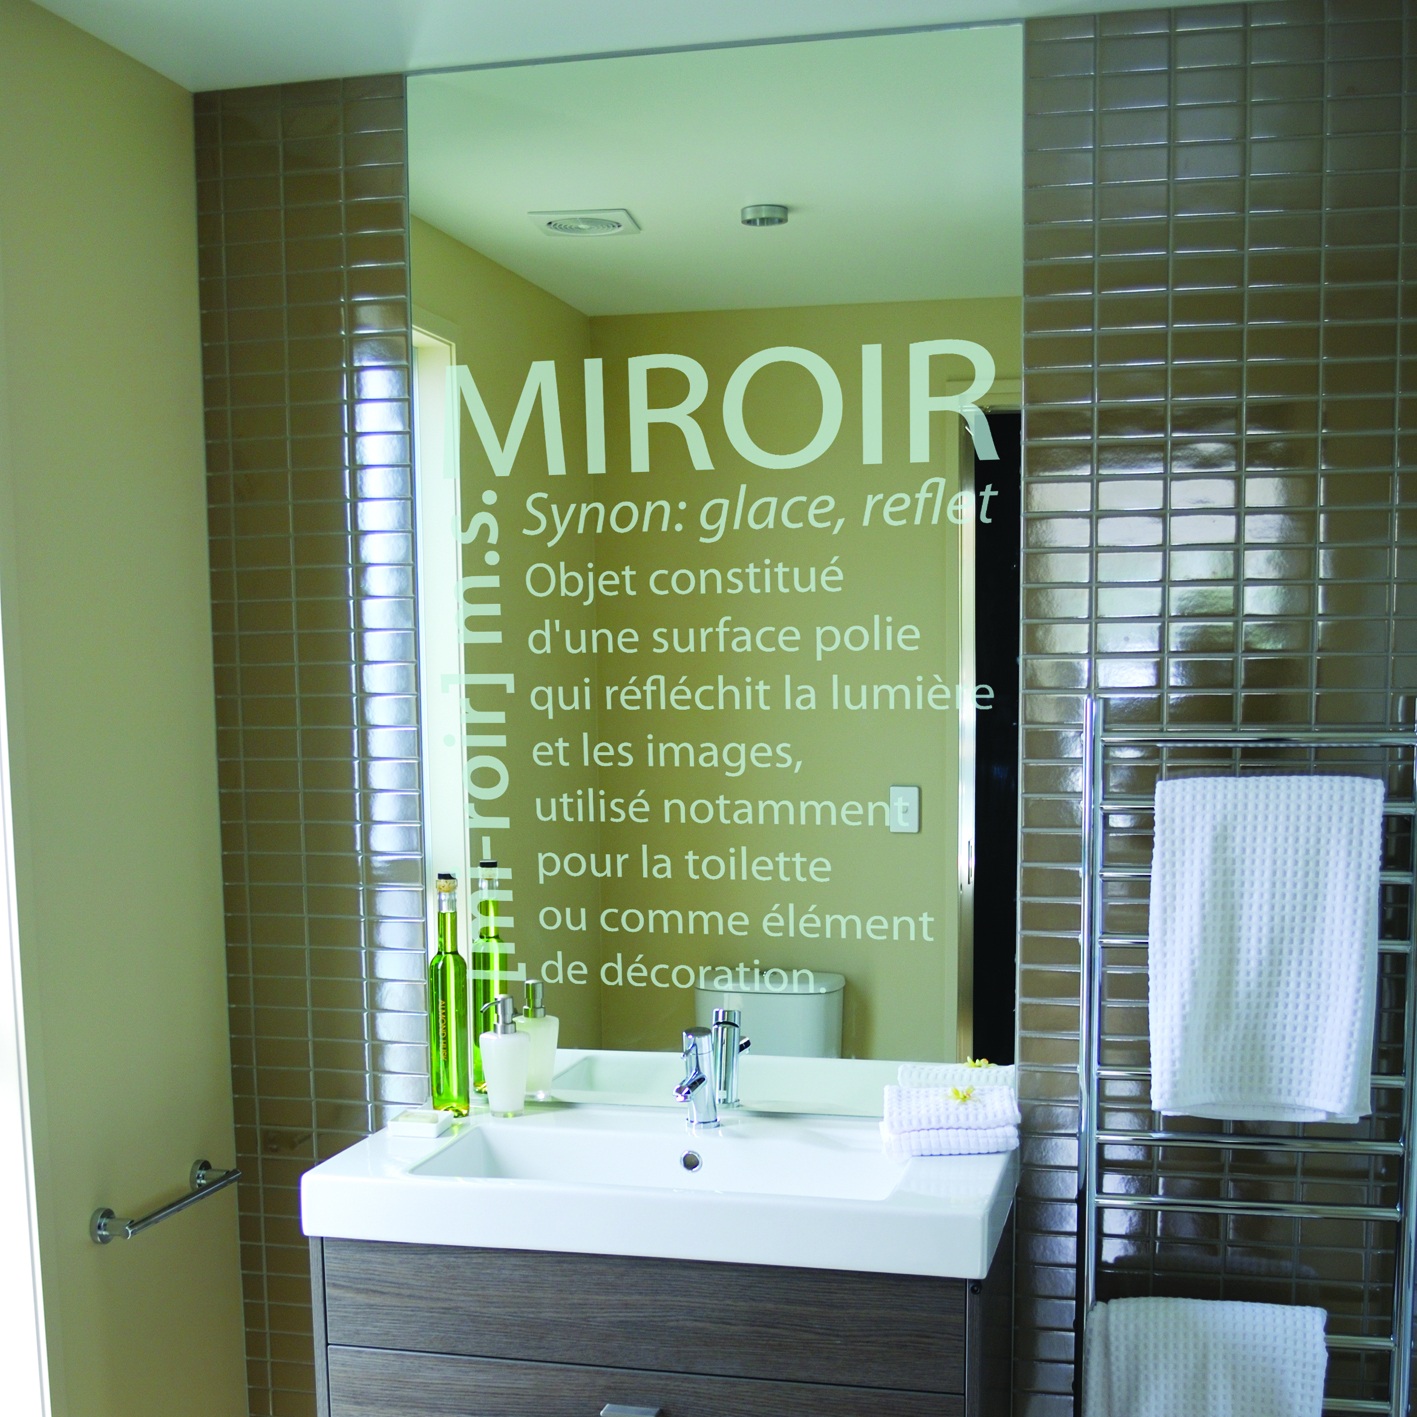 Stickers d finition miroir sdb sti0044 tableau design for Miroir definition